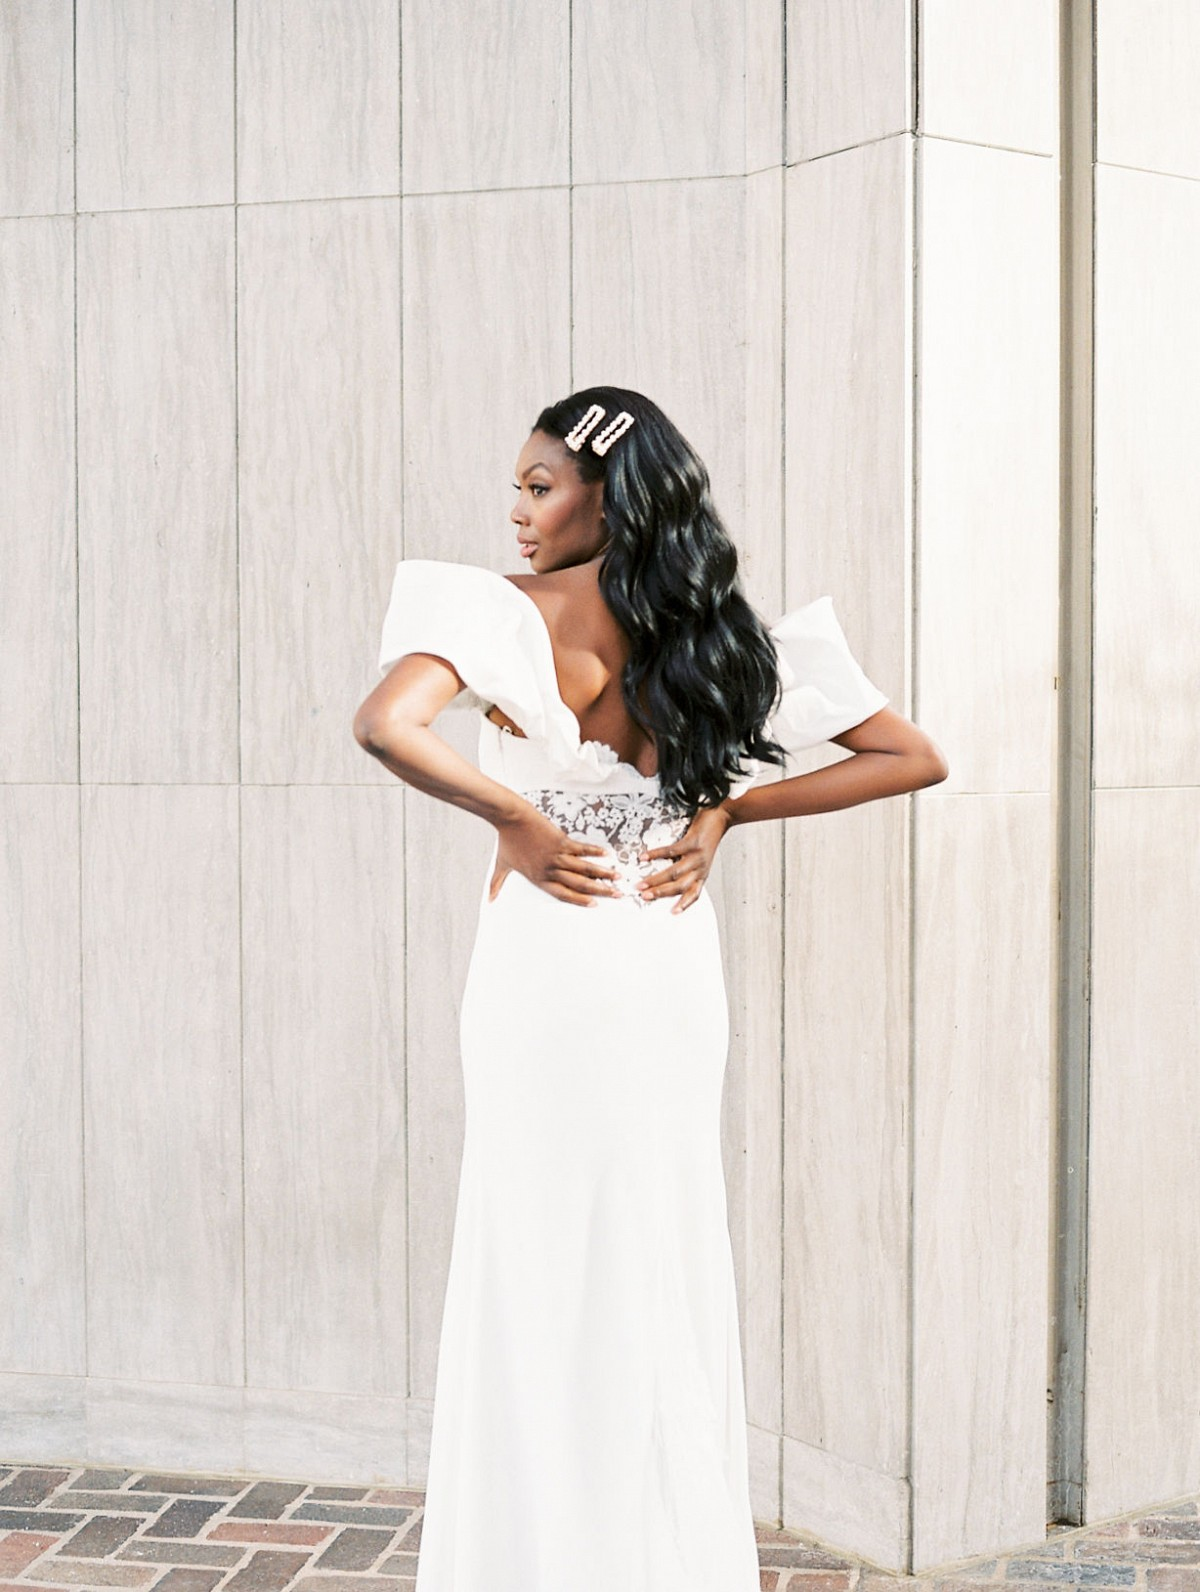 2 Completely Different Bridal Looks for a City Wedding